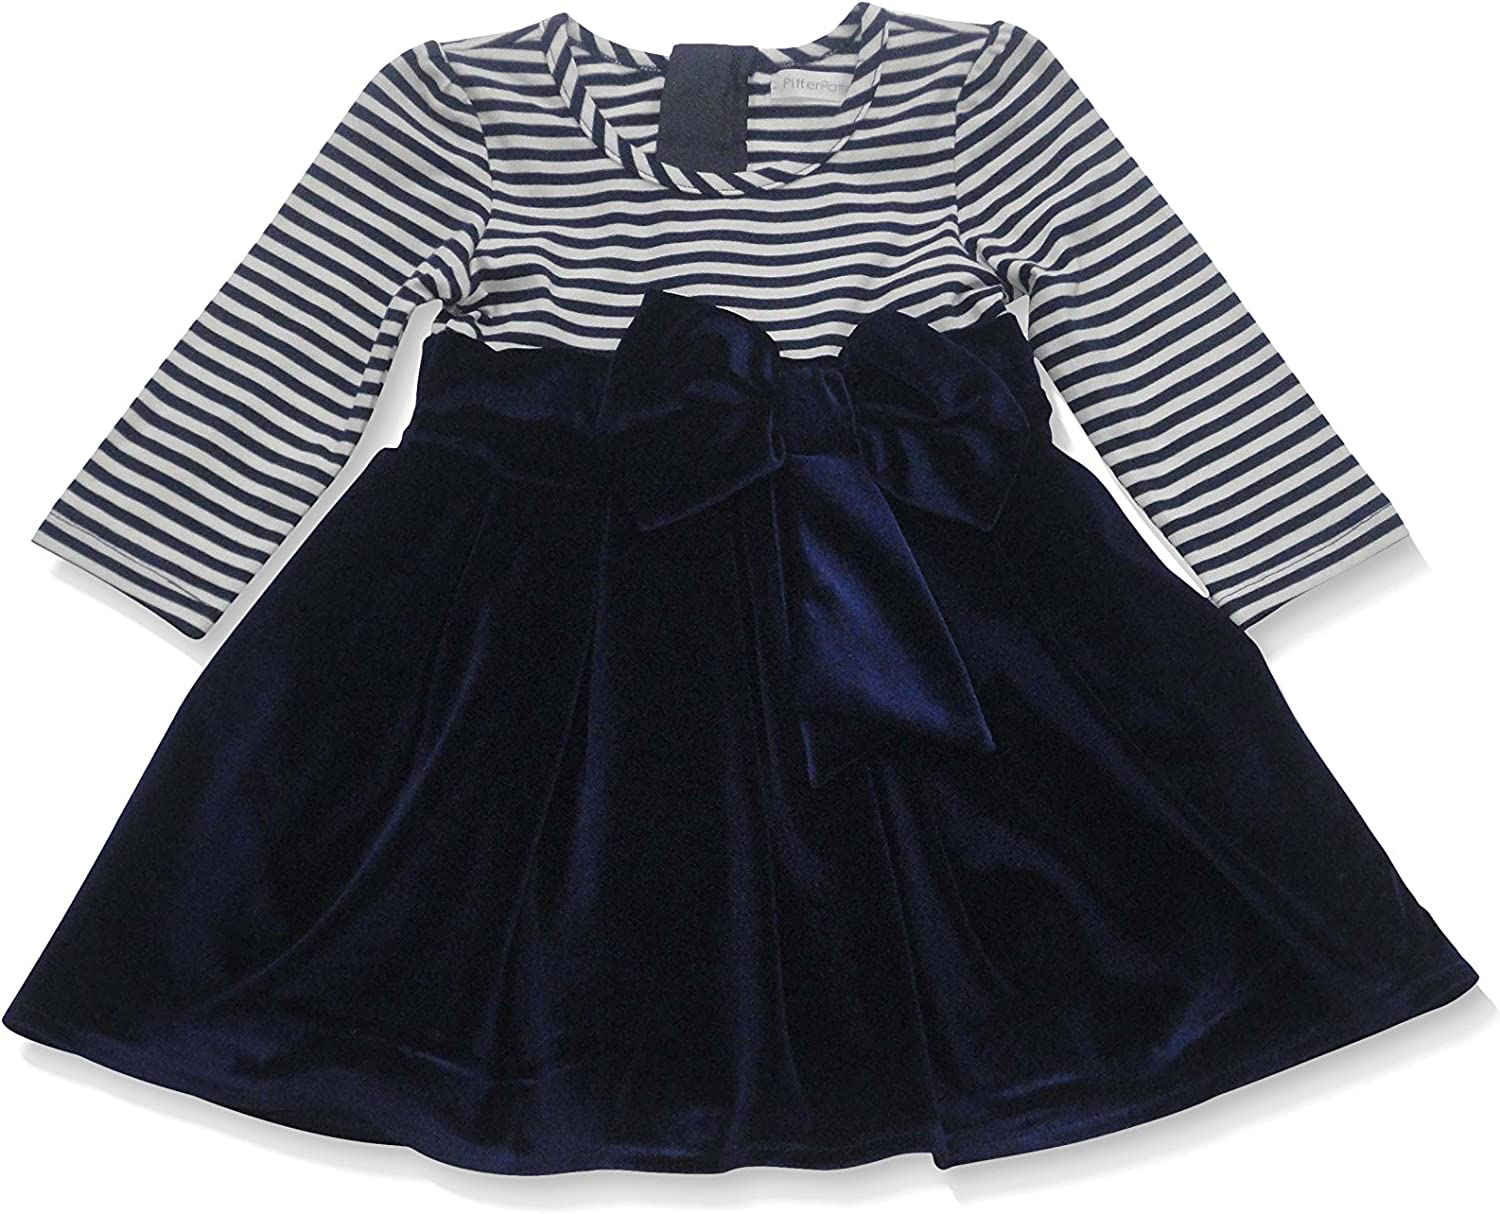 Lucie et Coco Striped Dress with Bow 36112